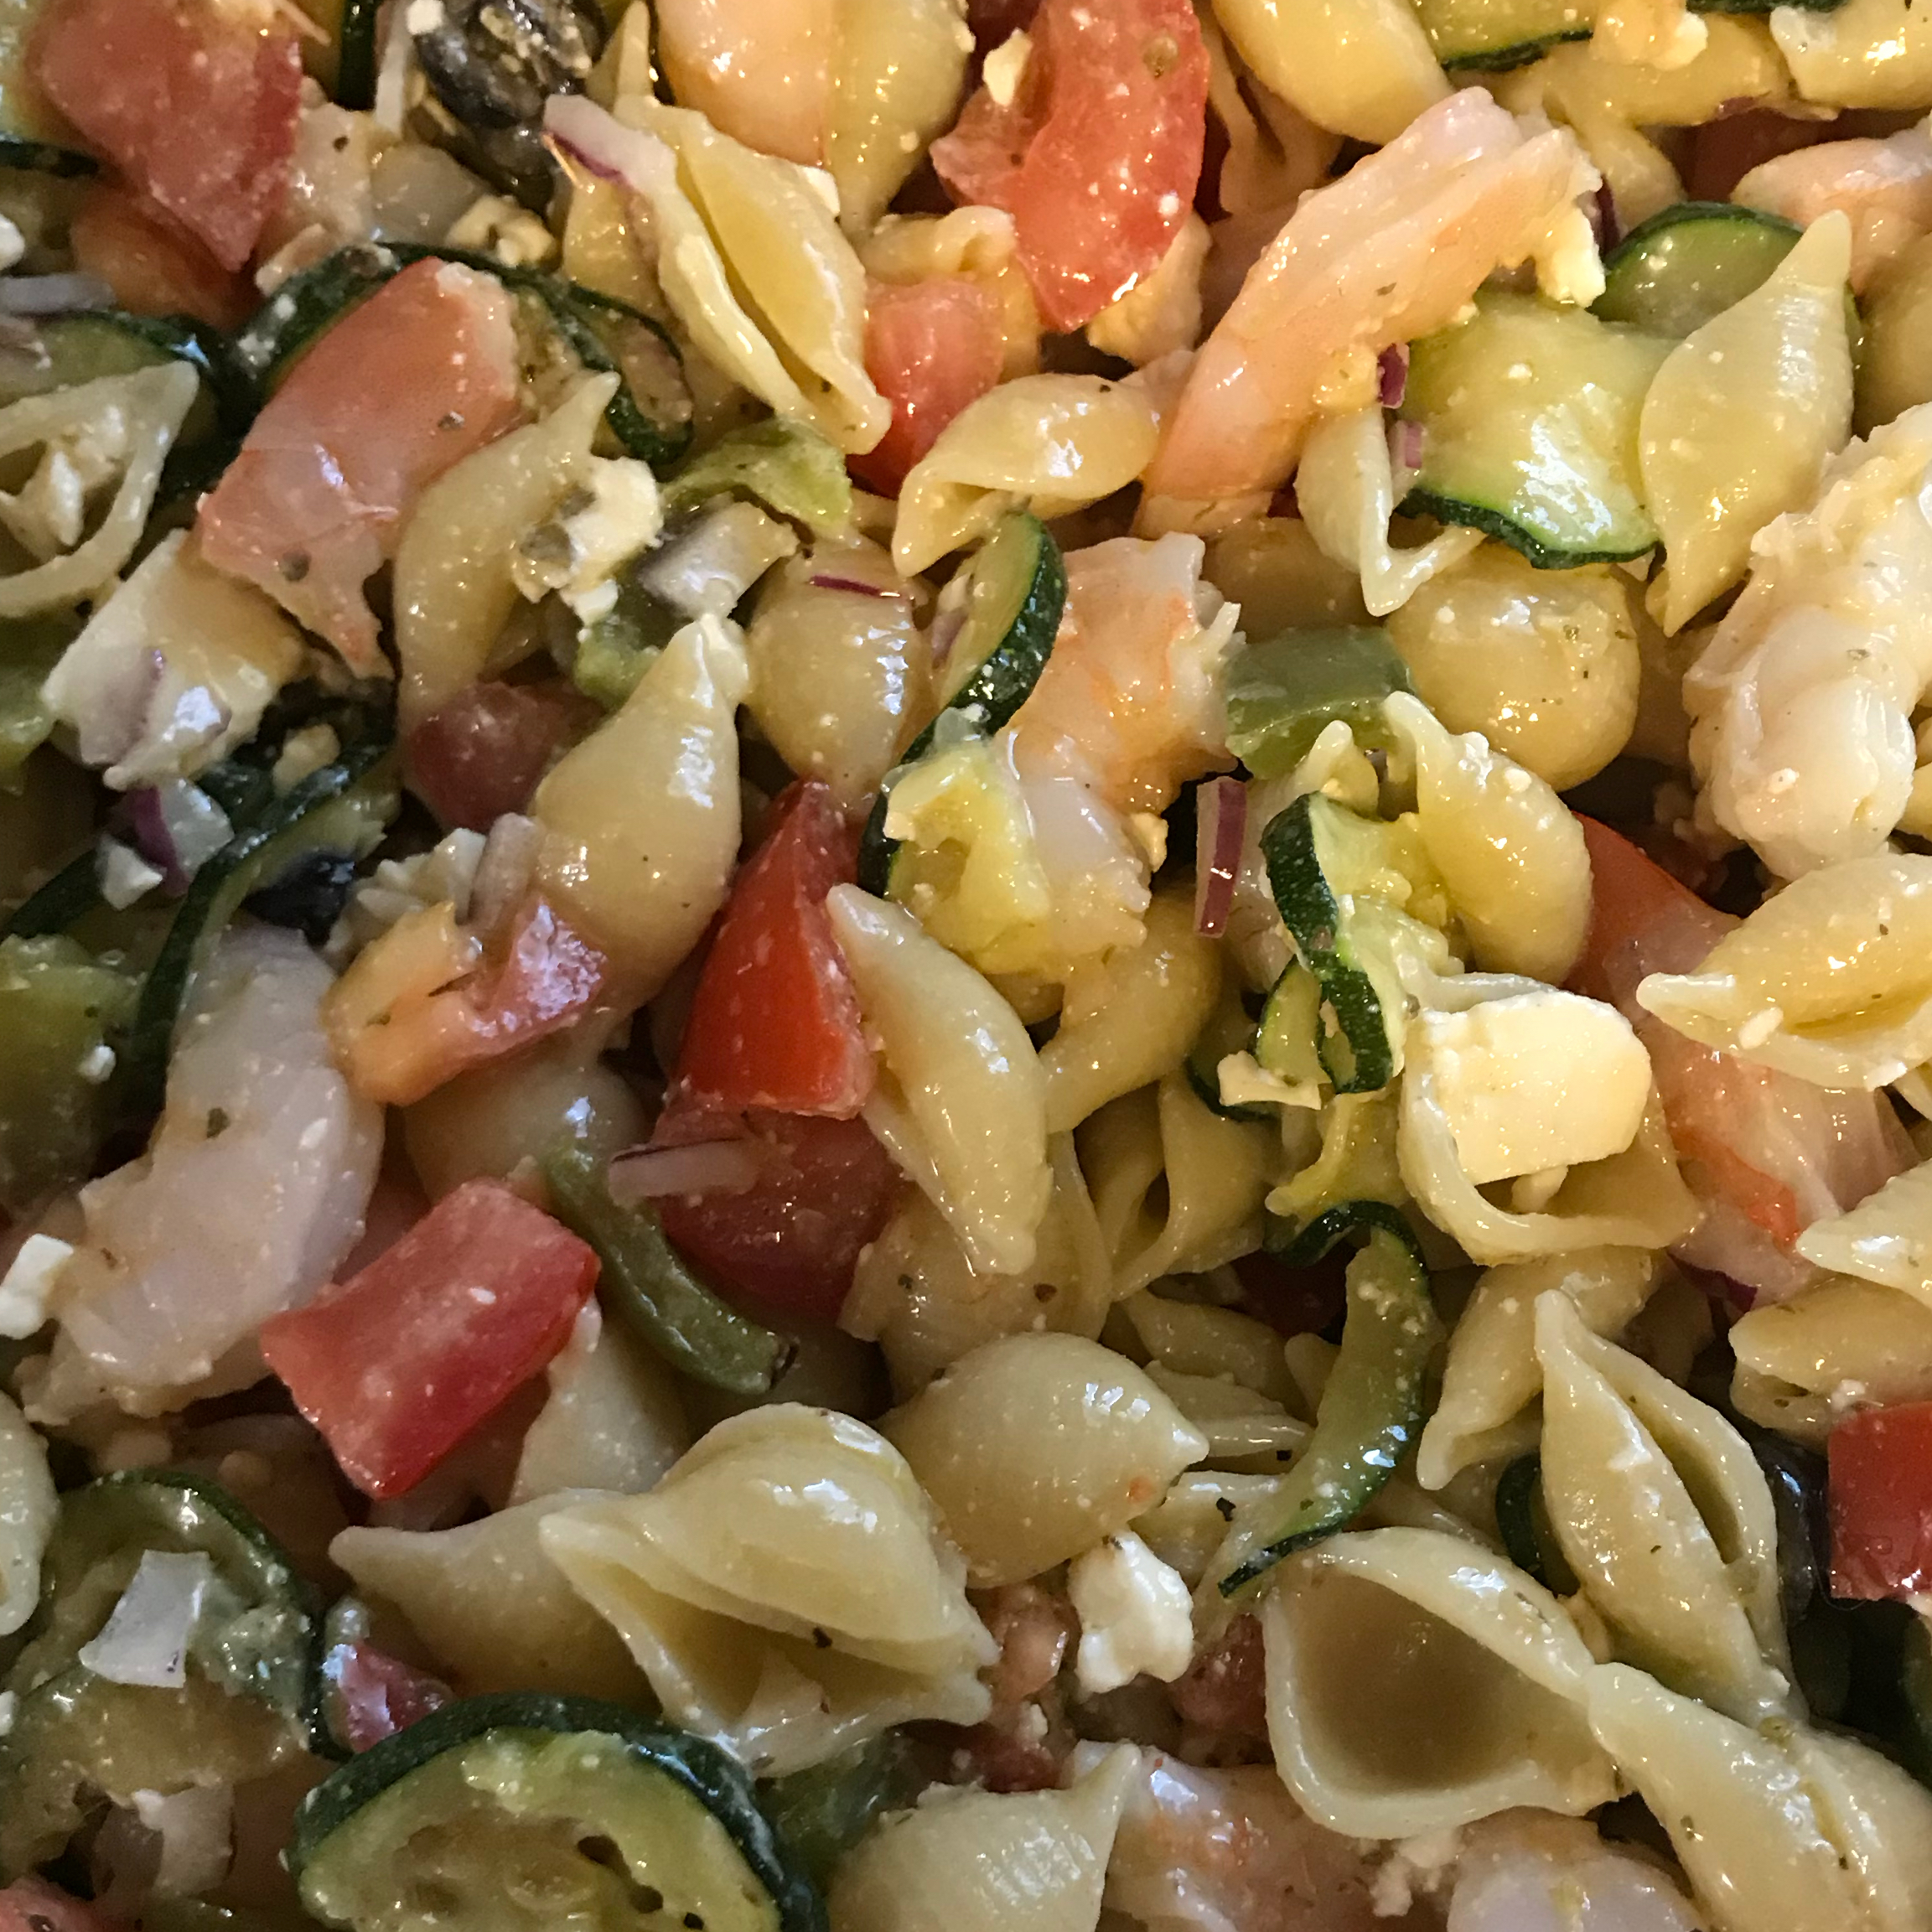 Greek Pasta Salad with Shrimp, Tomatoes, Zucchini, Peppers, and Feta Charisma138